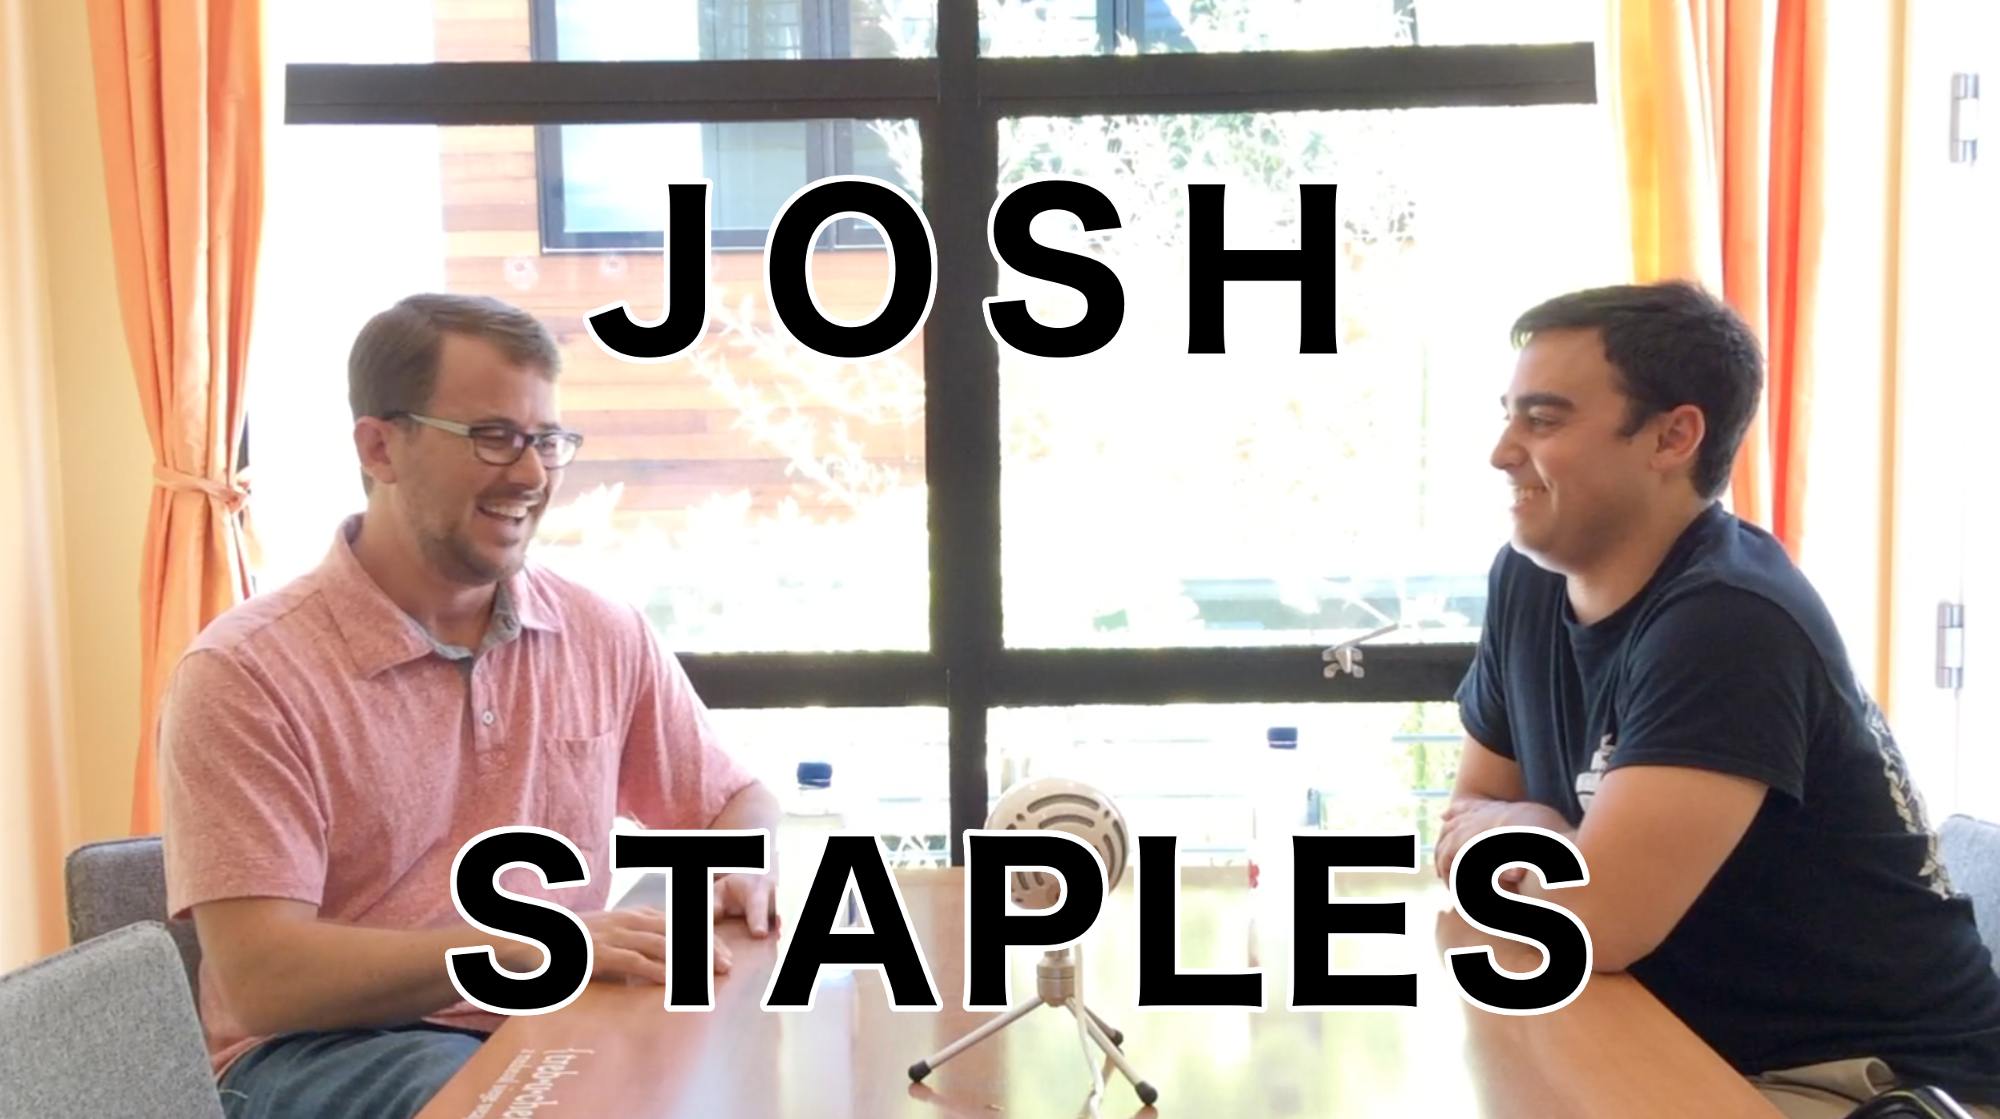 Josh Staples, Solutions Engineer